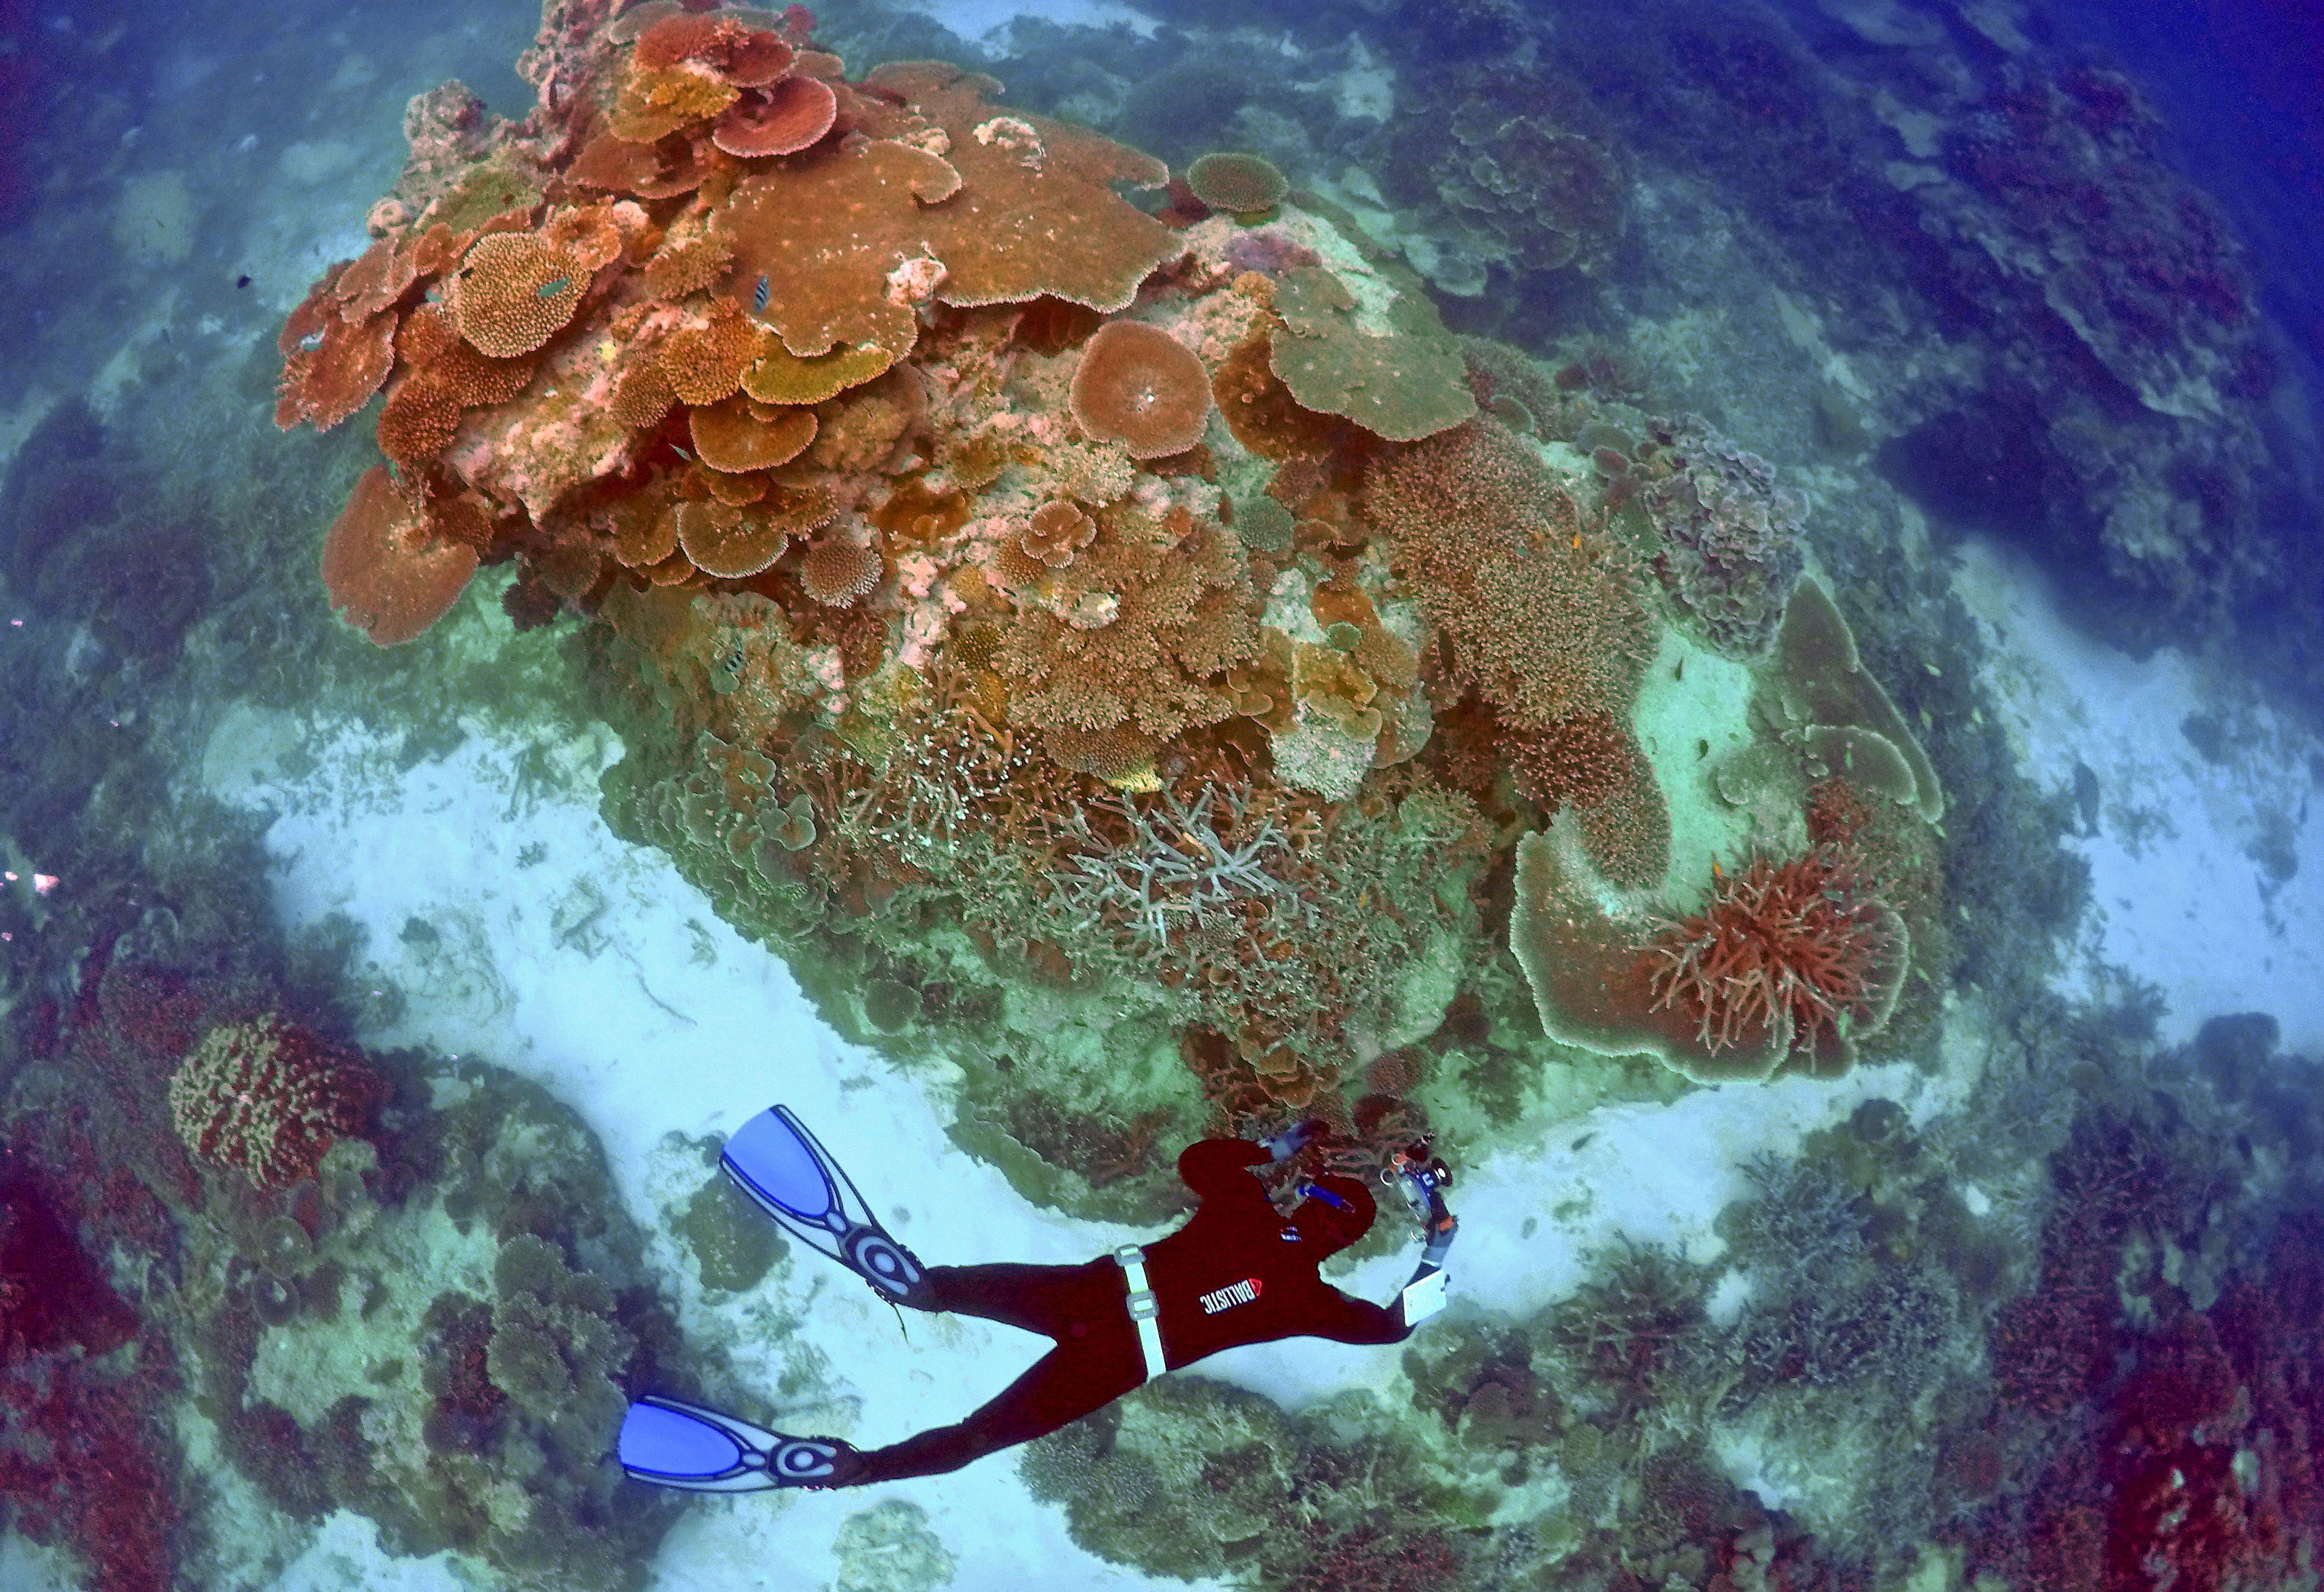 Surviving bleached Barrier Reef coral 'more resilient to heat'